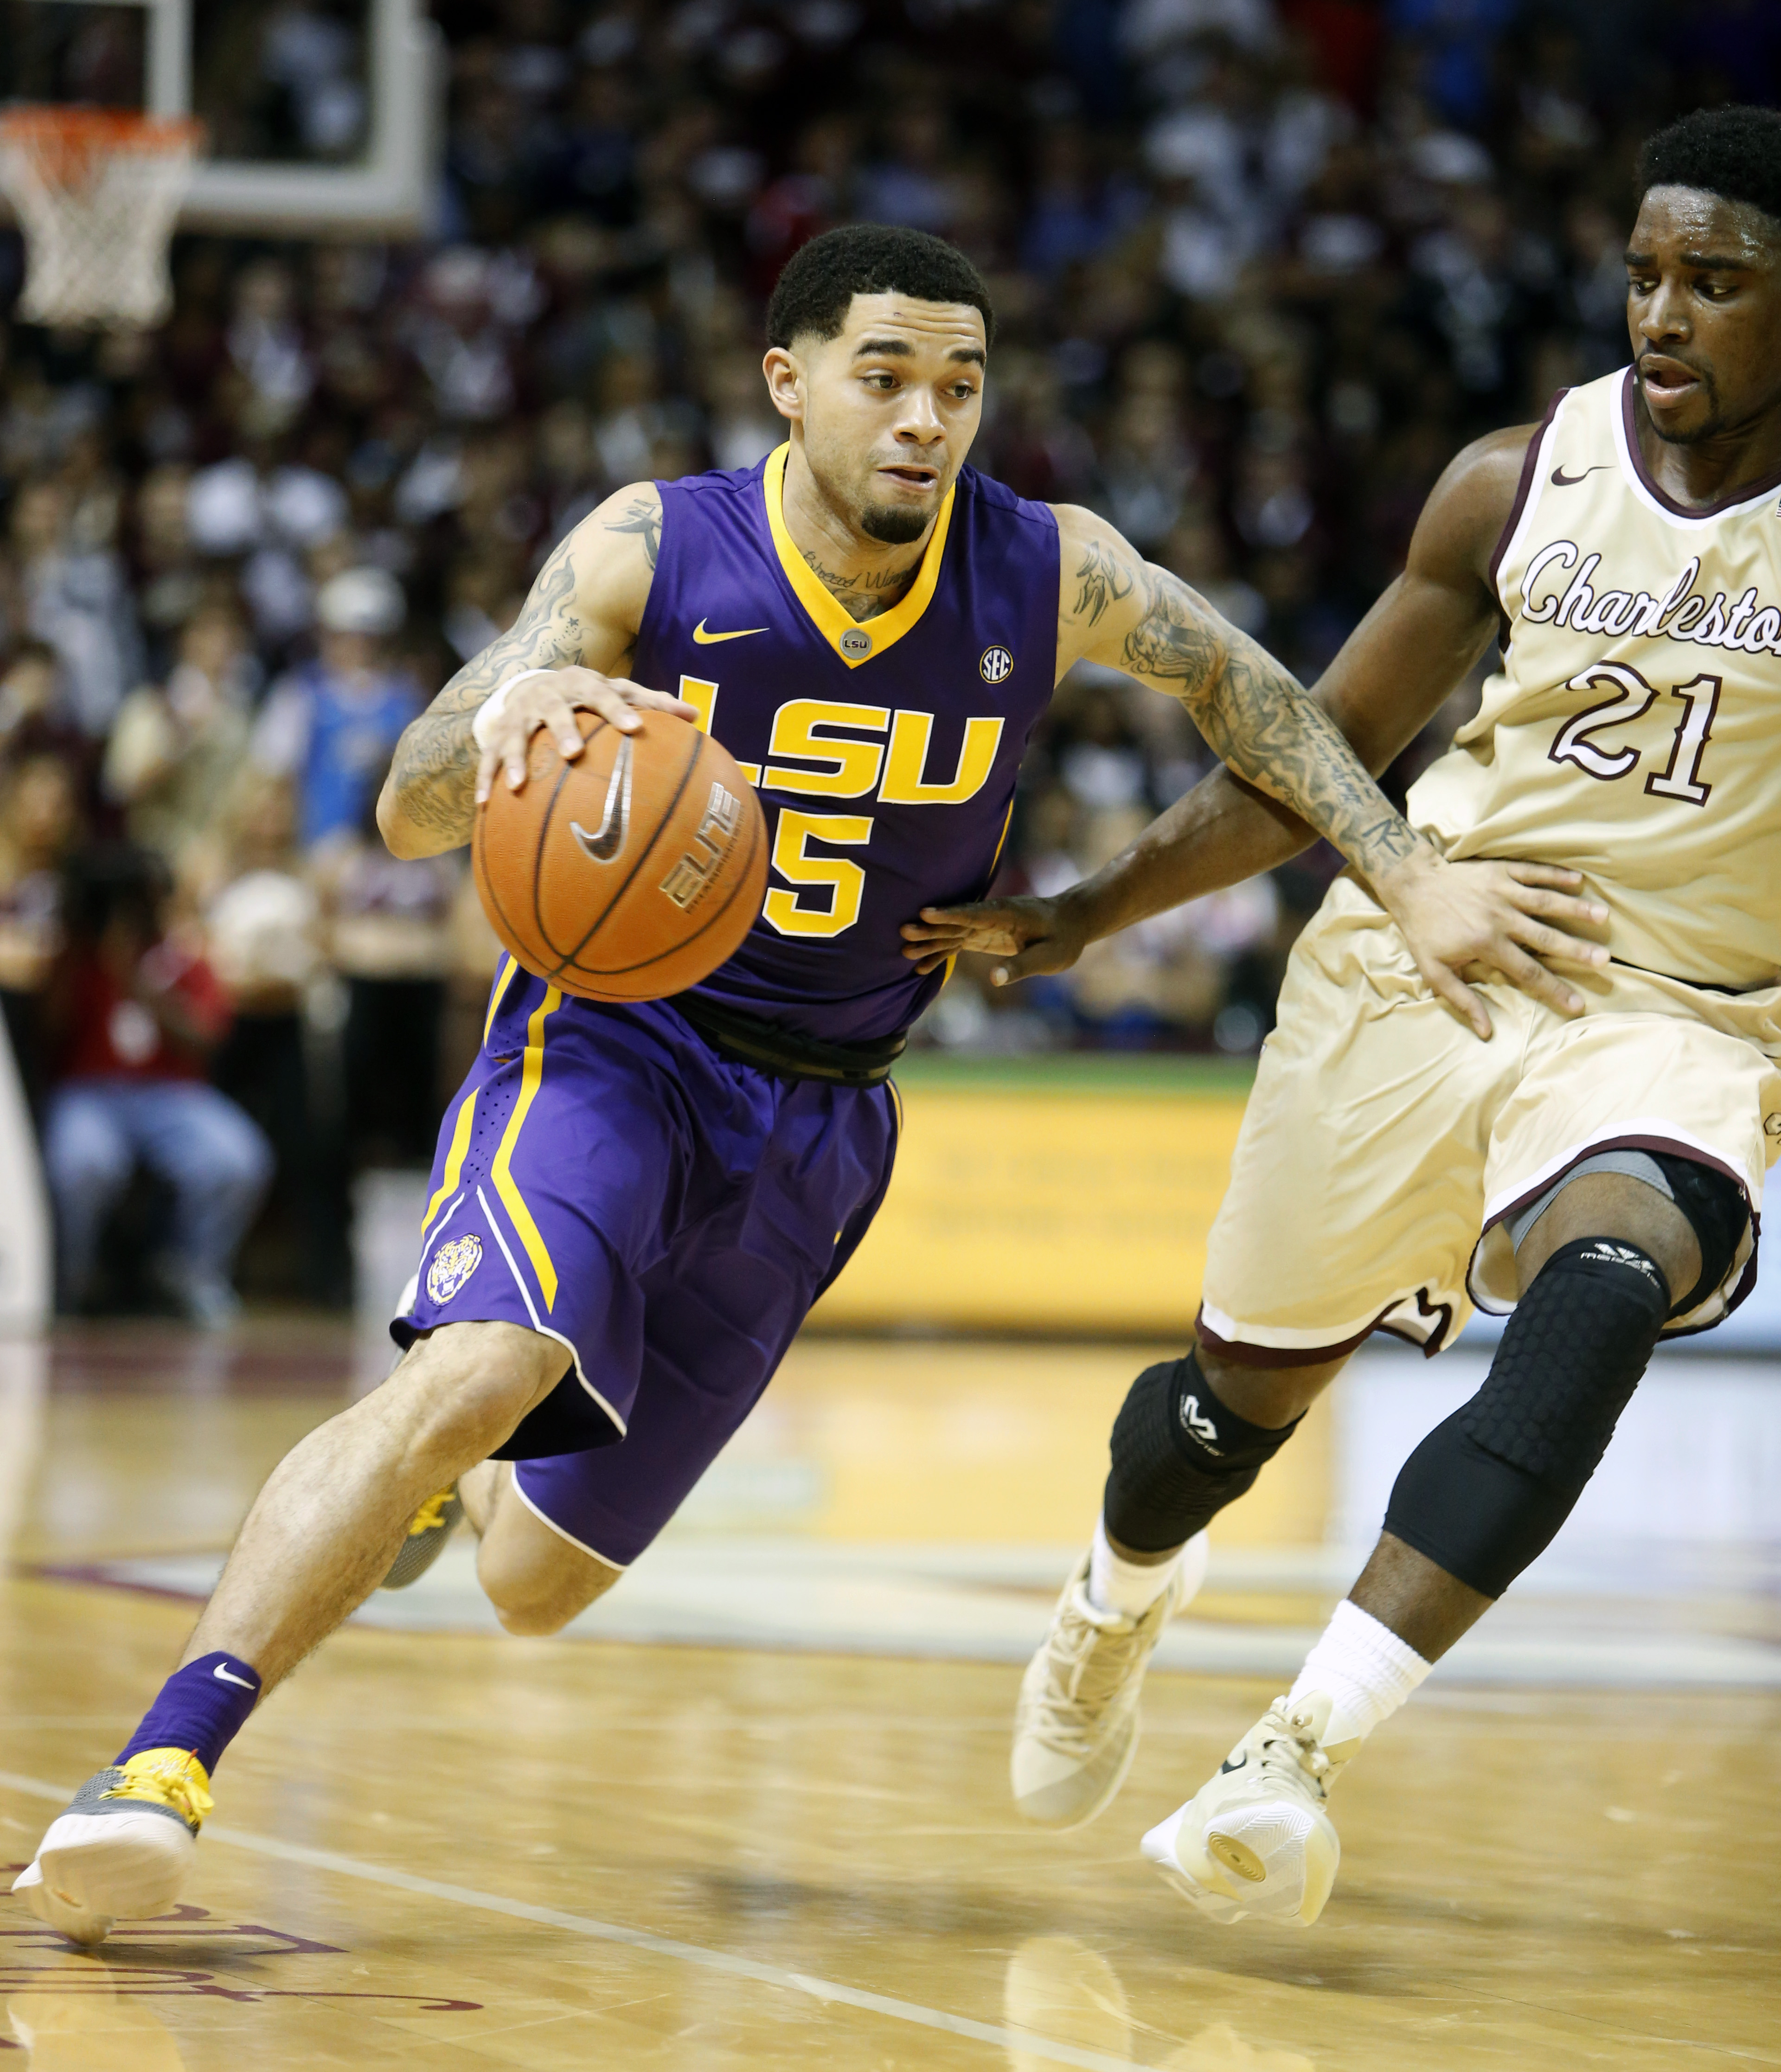 LSU's Josh Gray, at left, drives around College of Charleston's Marquise Pointer during first half action of an NCAA college basketball game Monday Nov. 30, 2015, in Charleston, S.C.  (AP Photo/Mic Smith)